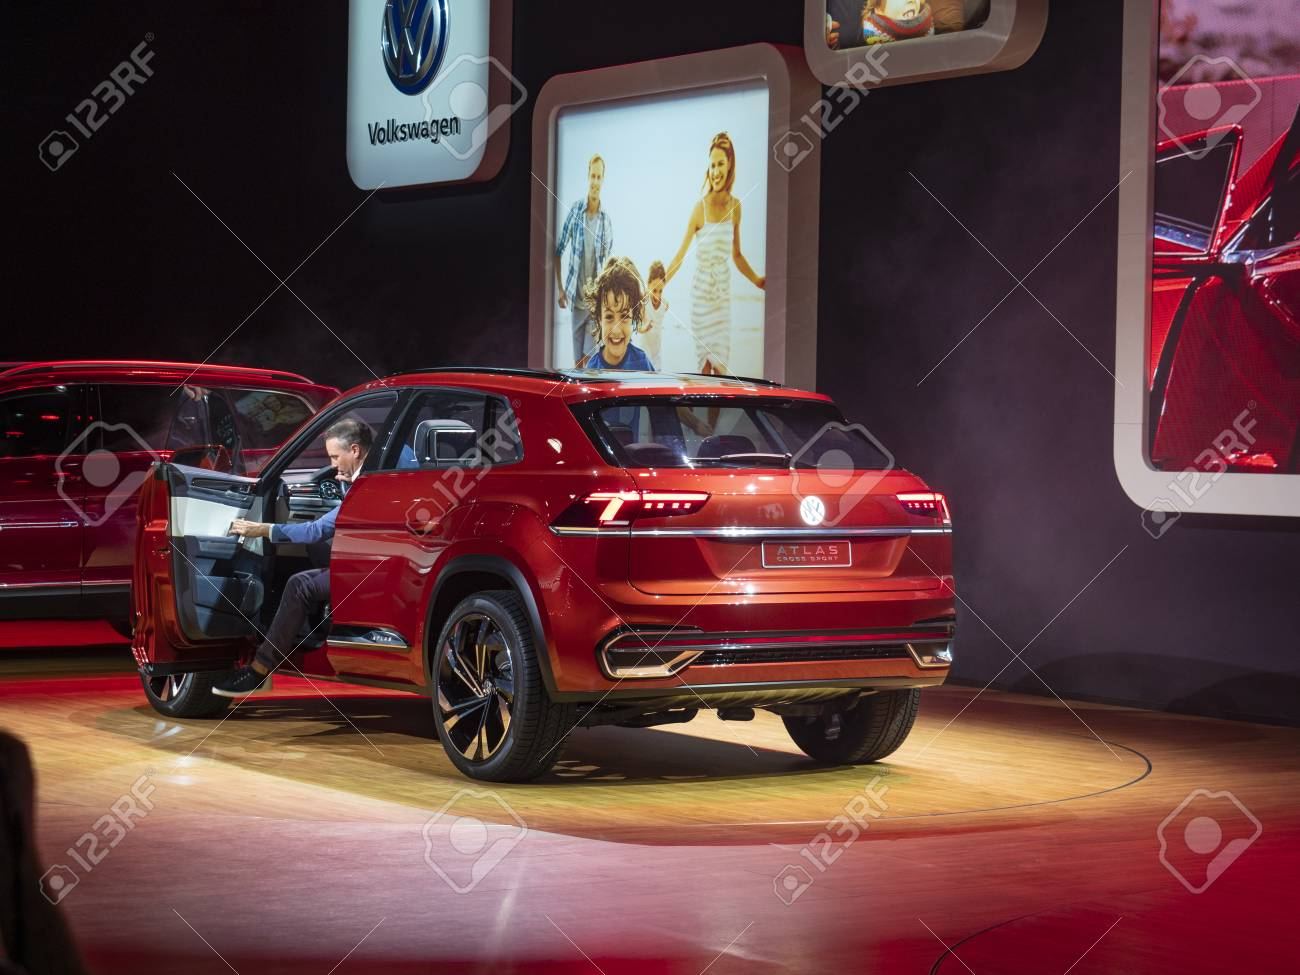 New York Us March 28 2018 Volkswagen Atlas Cross Sport Debut Stock Photo Picture And Royalty Free Image Image 106981426